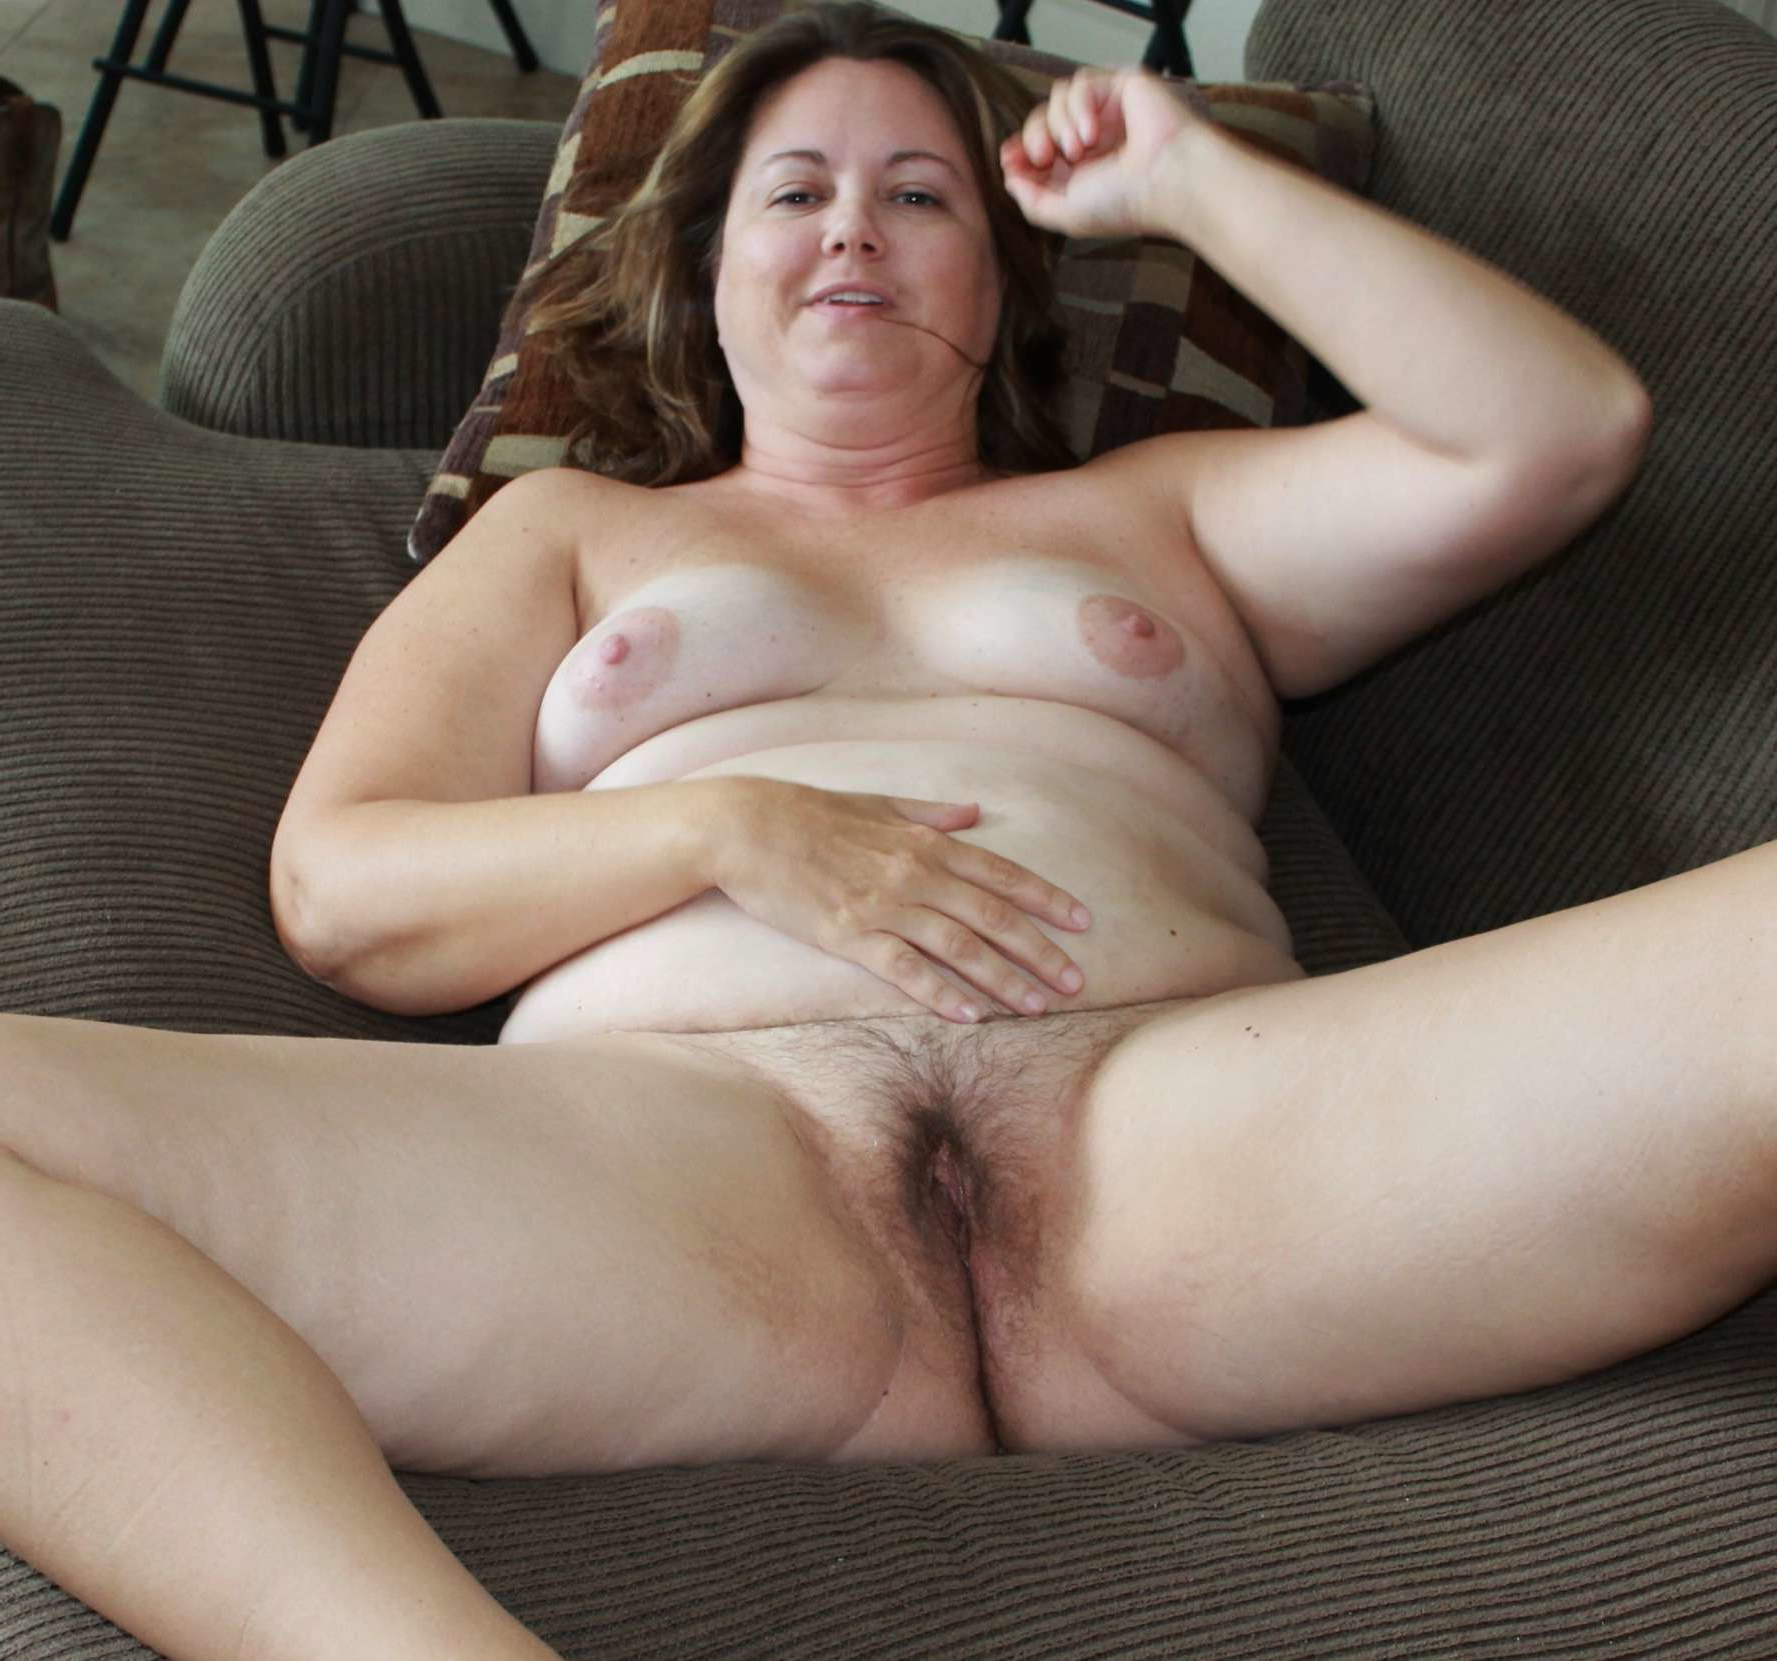 Hairy pussy older woman